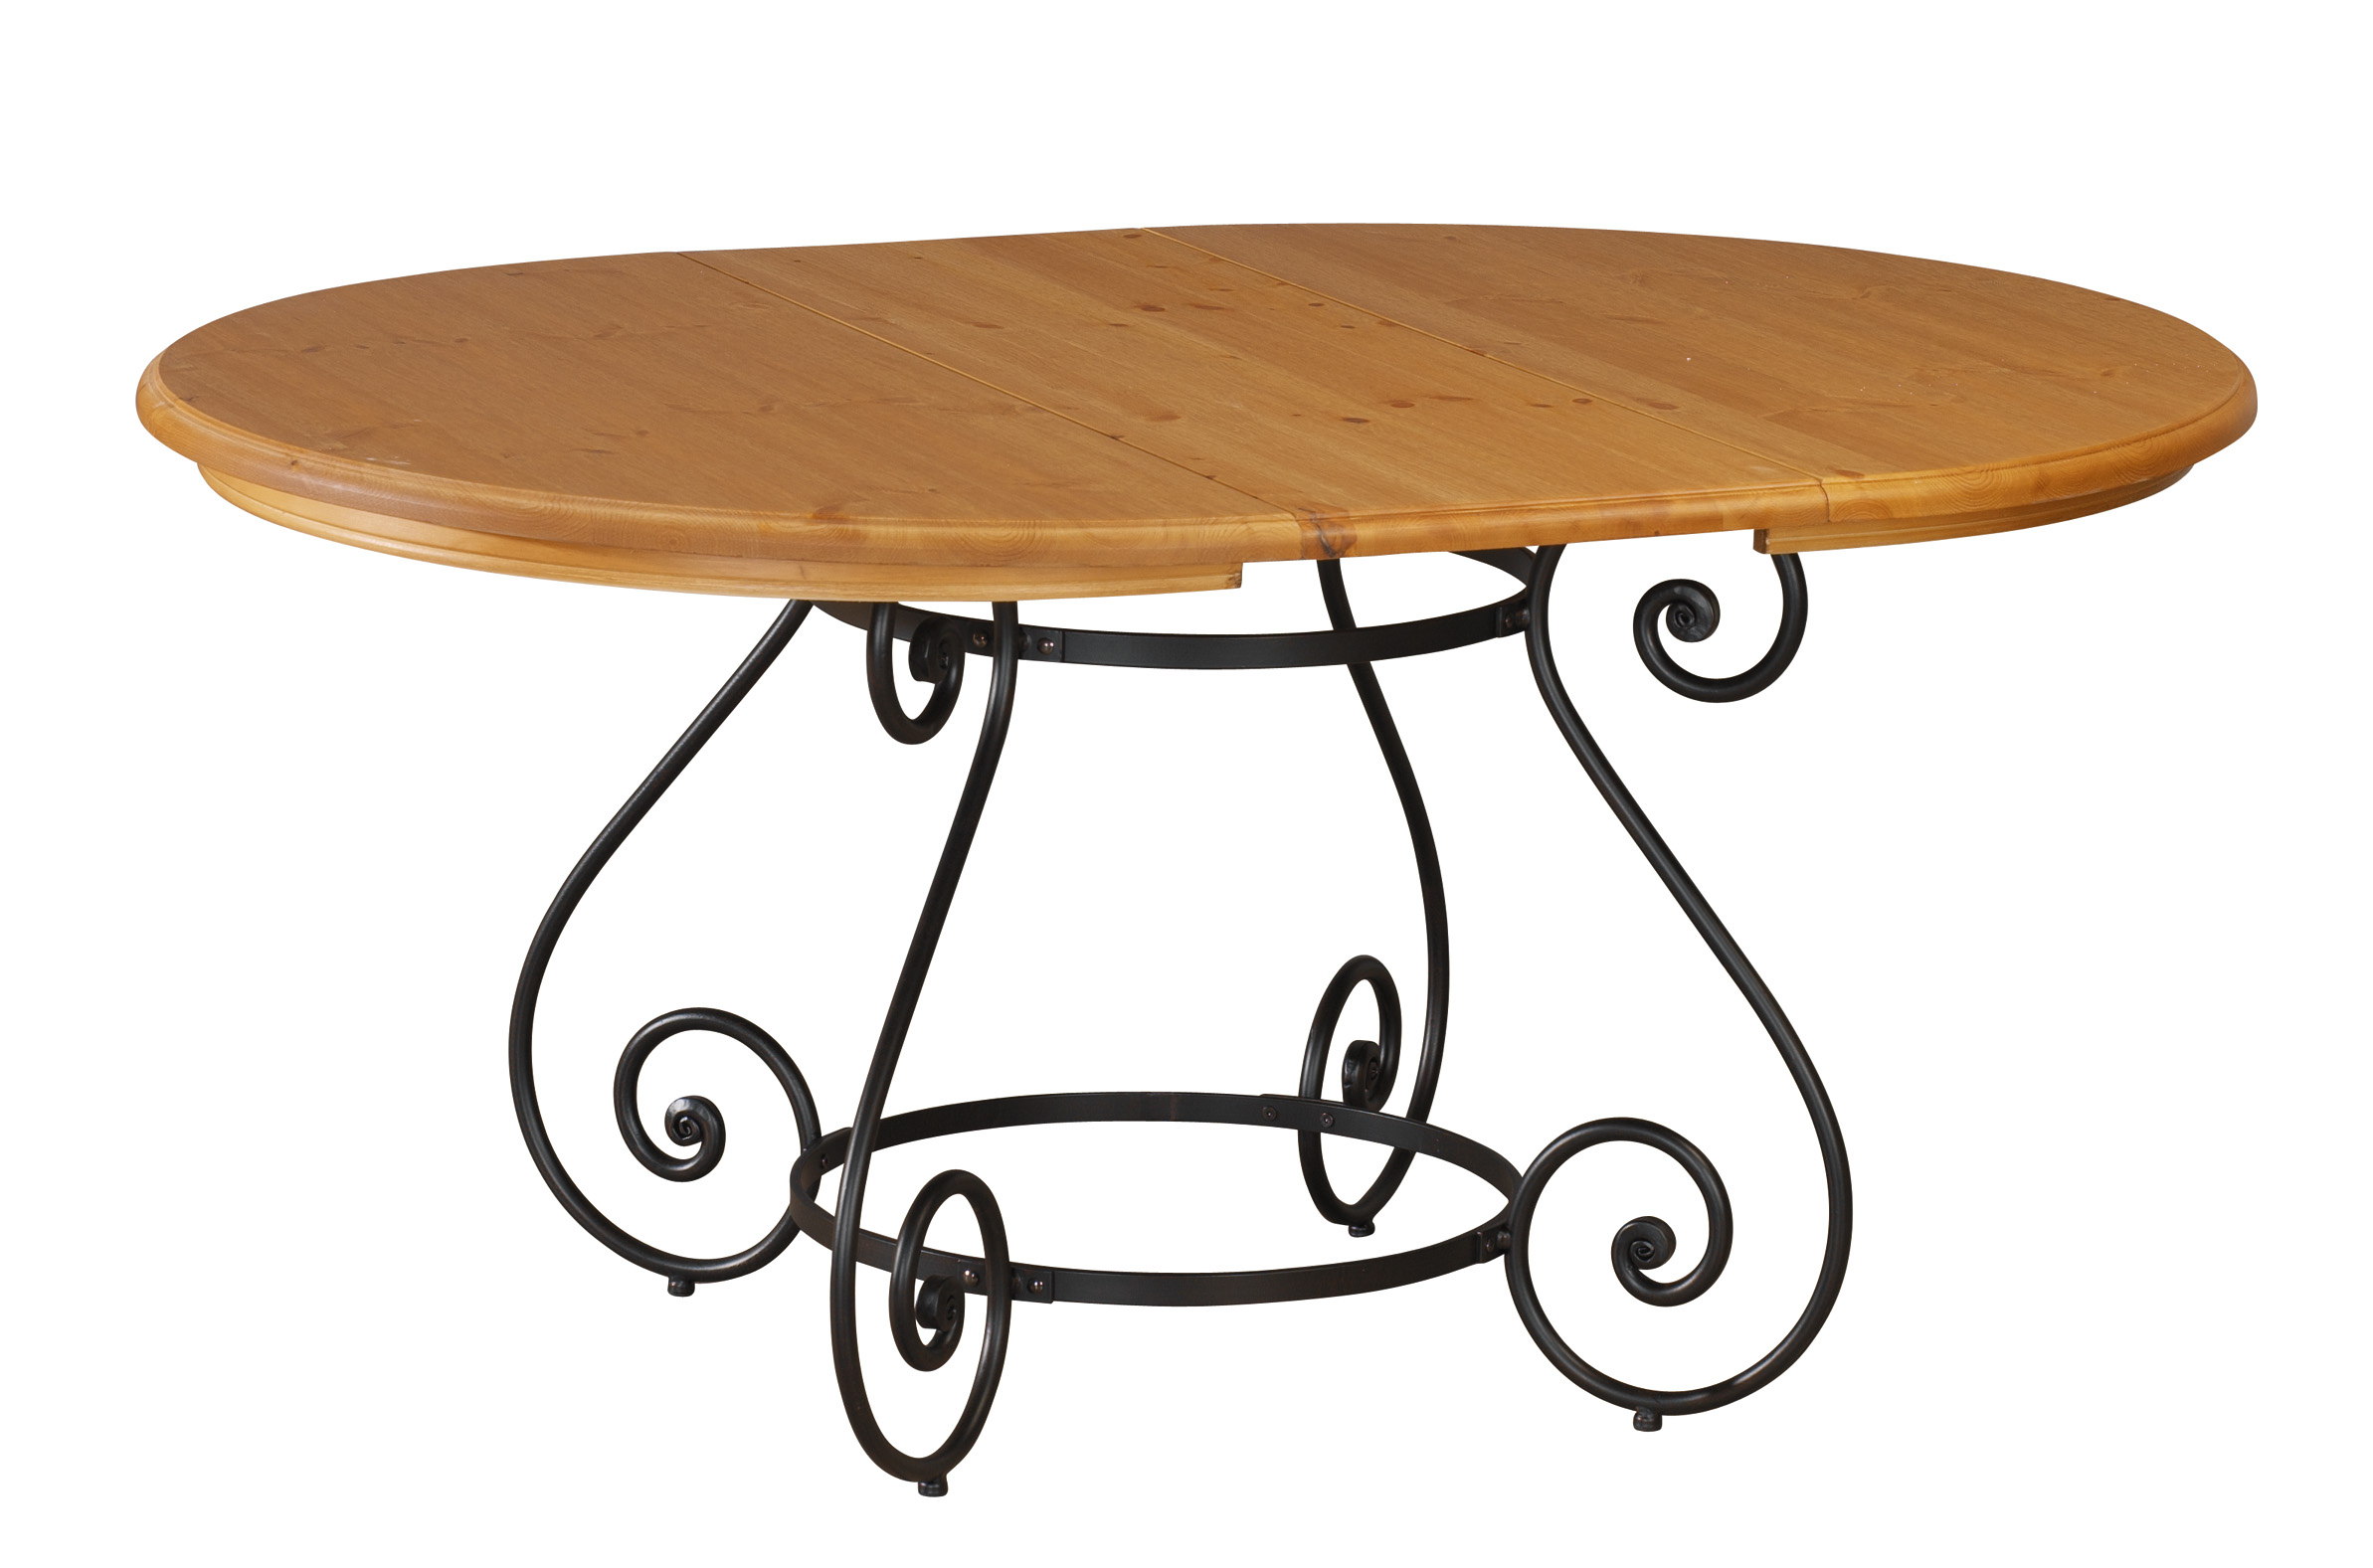 Table ronde fer forg et bois table de lit - Table fer forge plateau bois ...